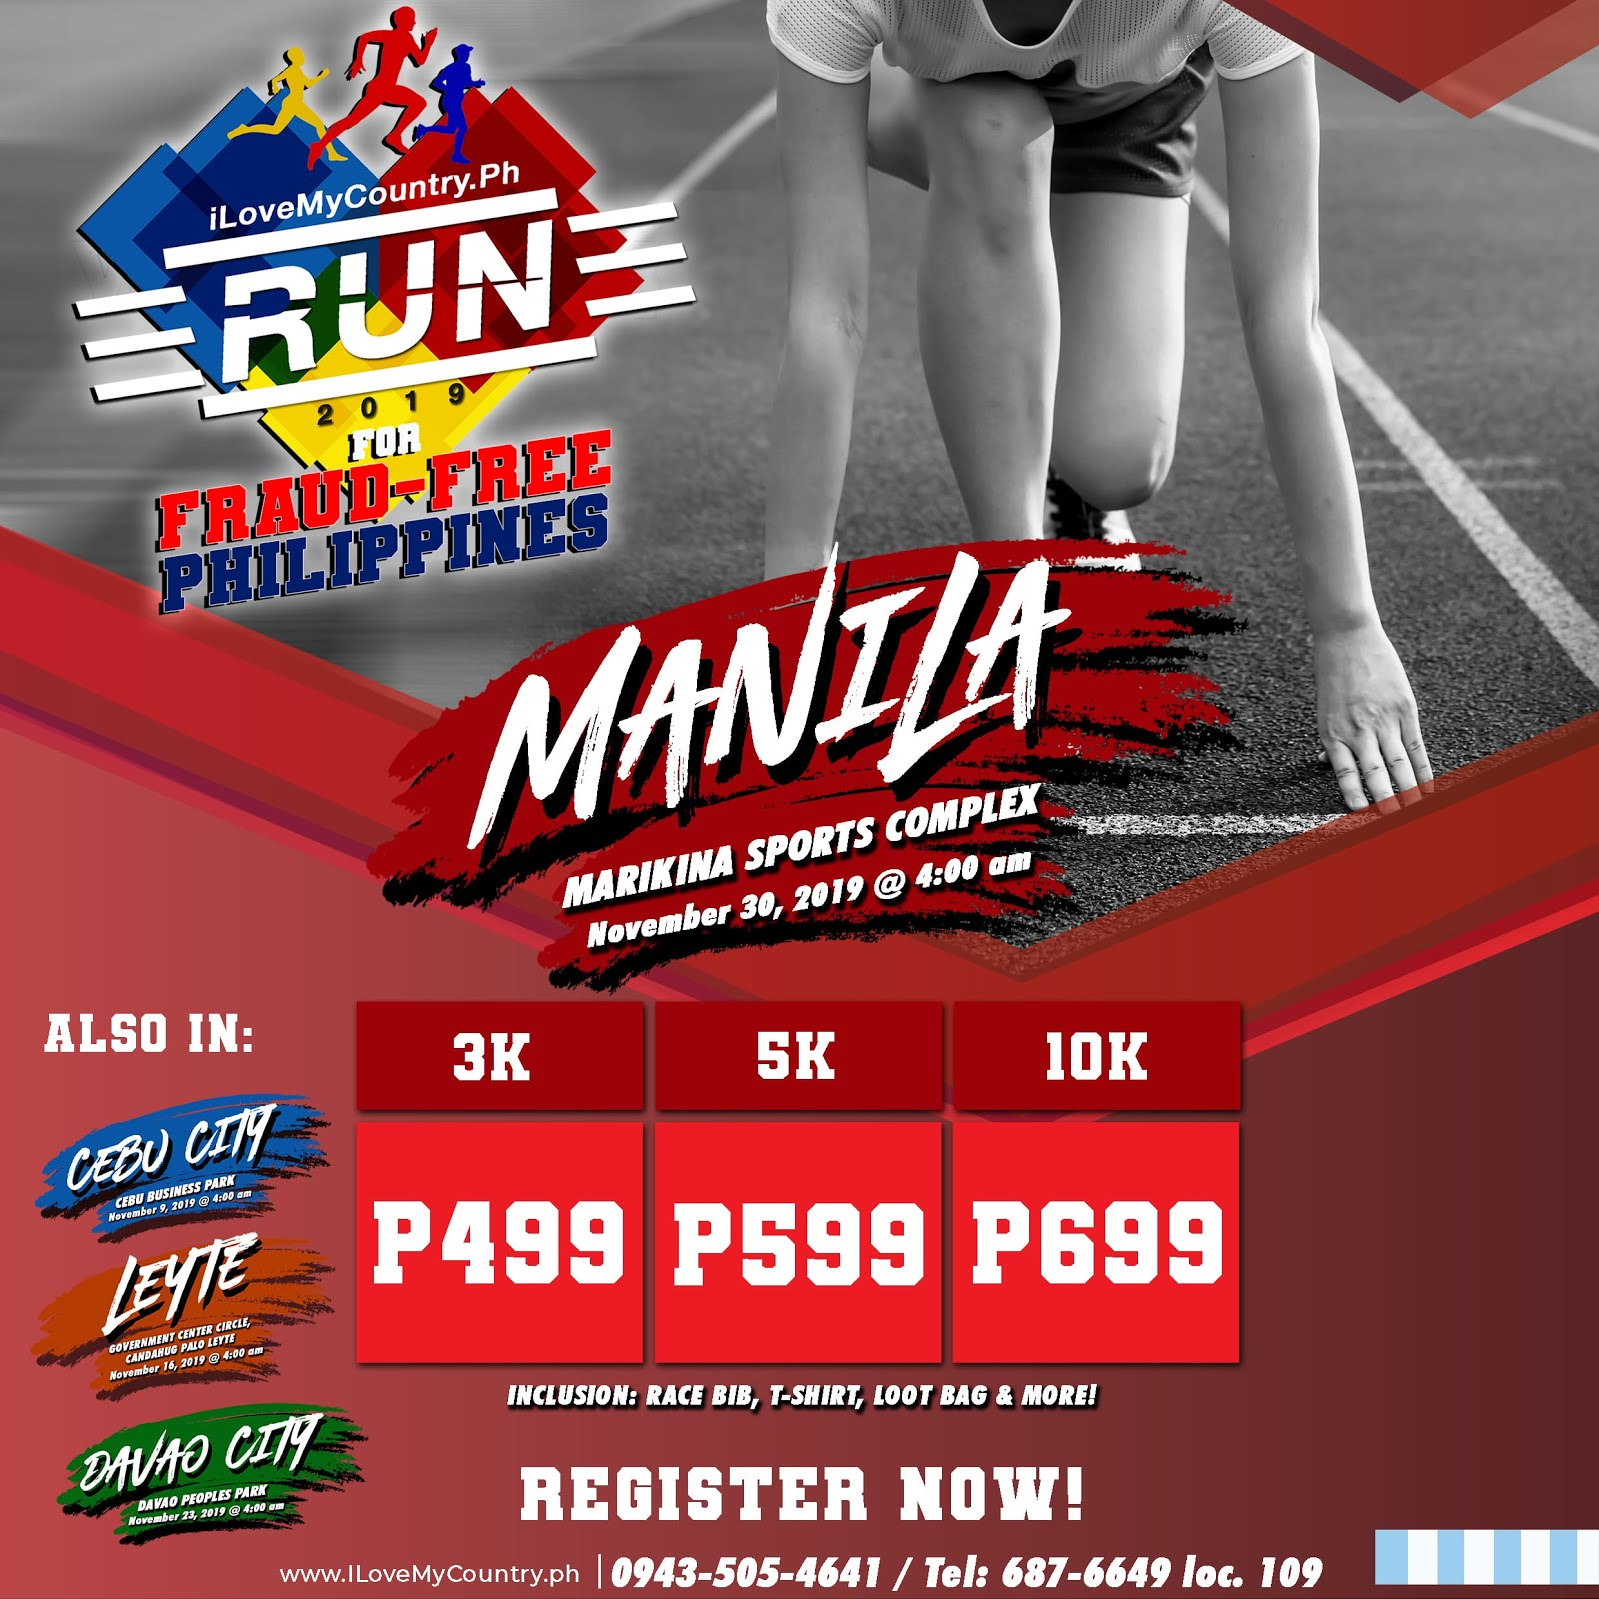 iLoveMyCountry.Ph RUN 2019 for FRAUD-FREE PHILIPPINES